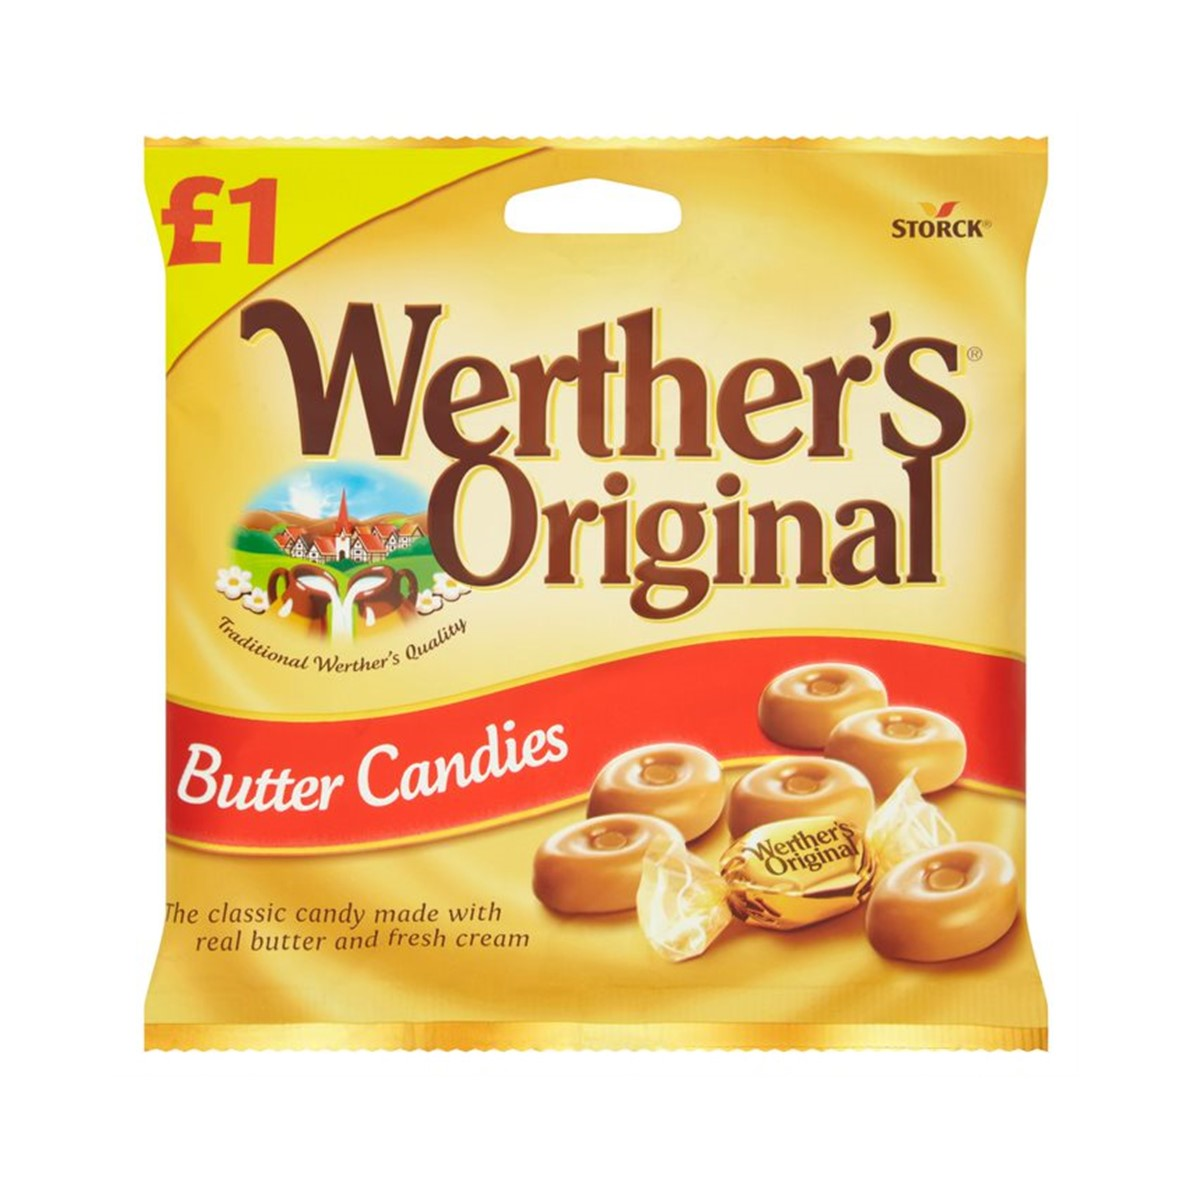 Werther's Original Butter Candies [Wrapped] - 12x110g packets